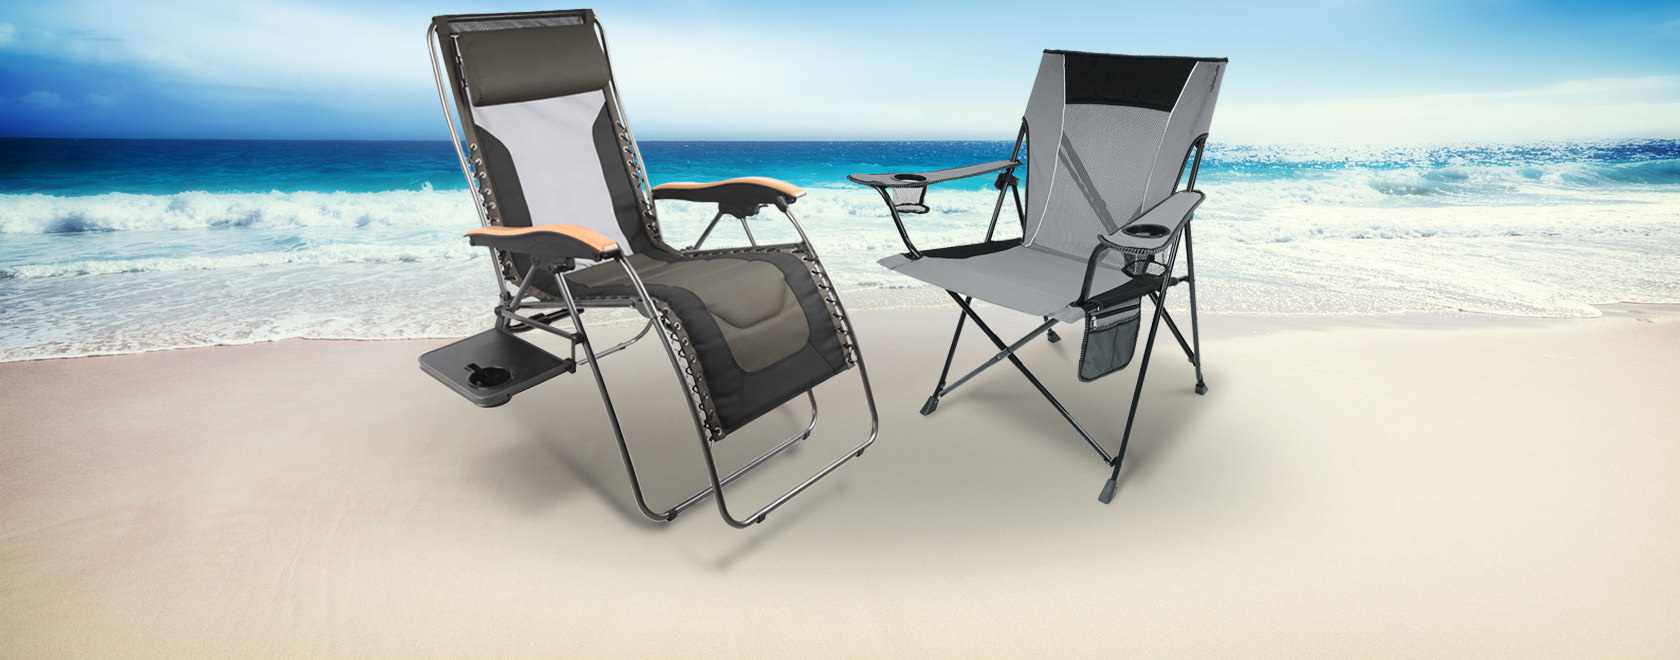 Celebrate Summer in Style! Shop Folding Chairs, Rockers and Recliners